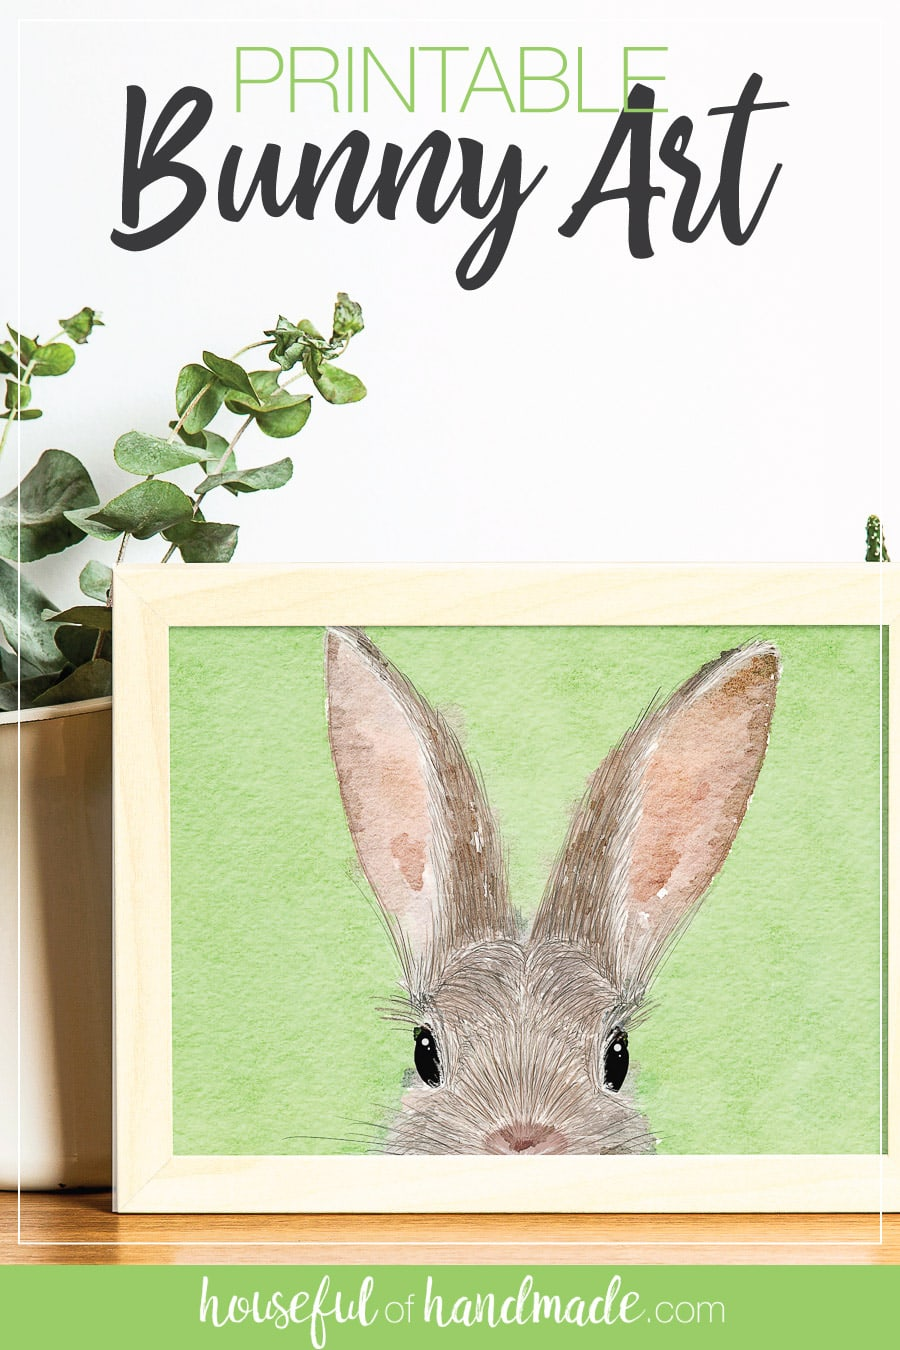 Watercolor and pen bunny art in a frame.